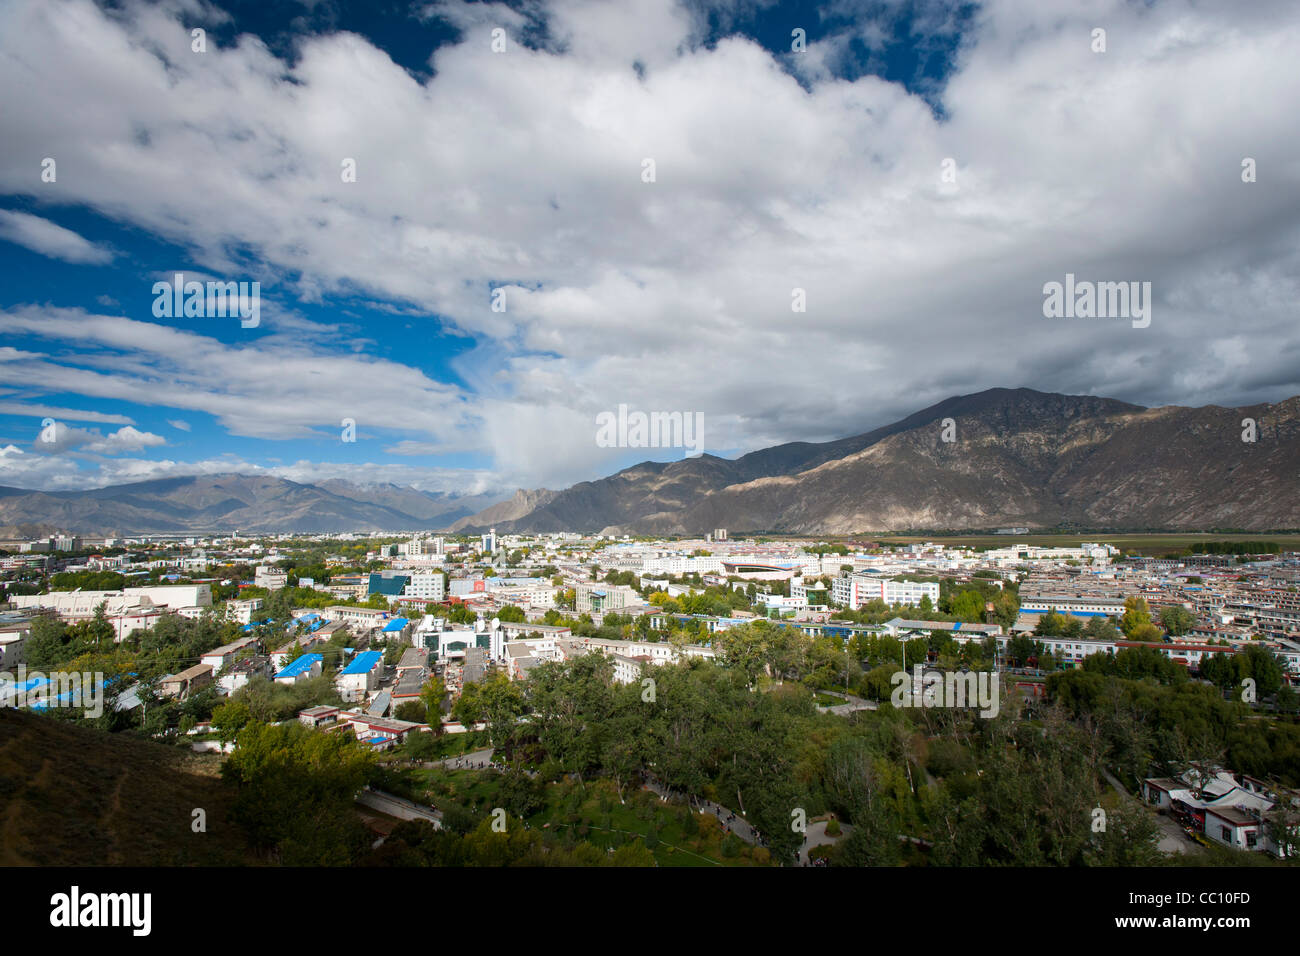 A view of Lhasa from Potala Palace - Stock Image